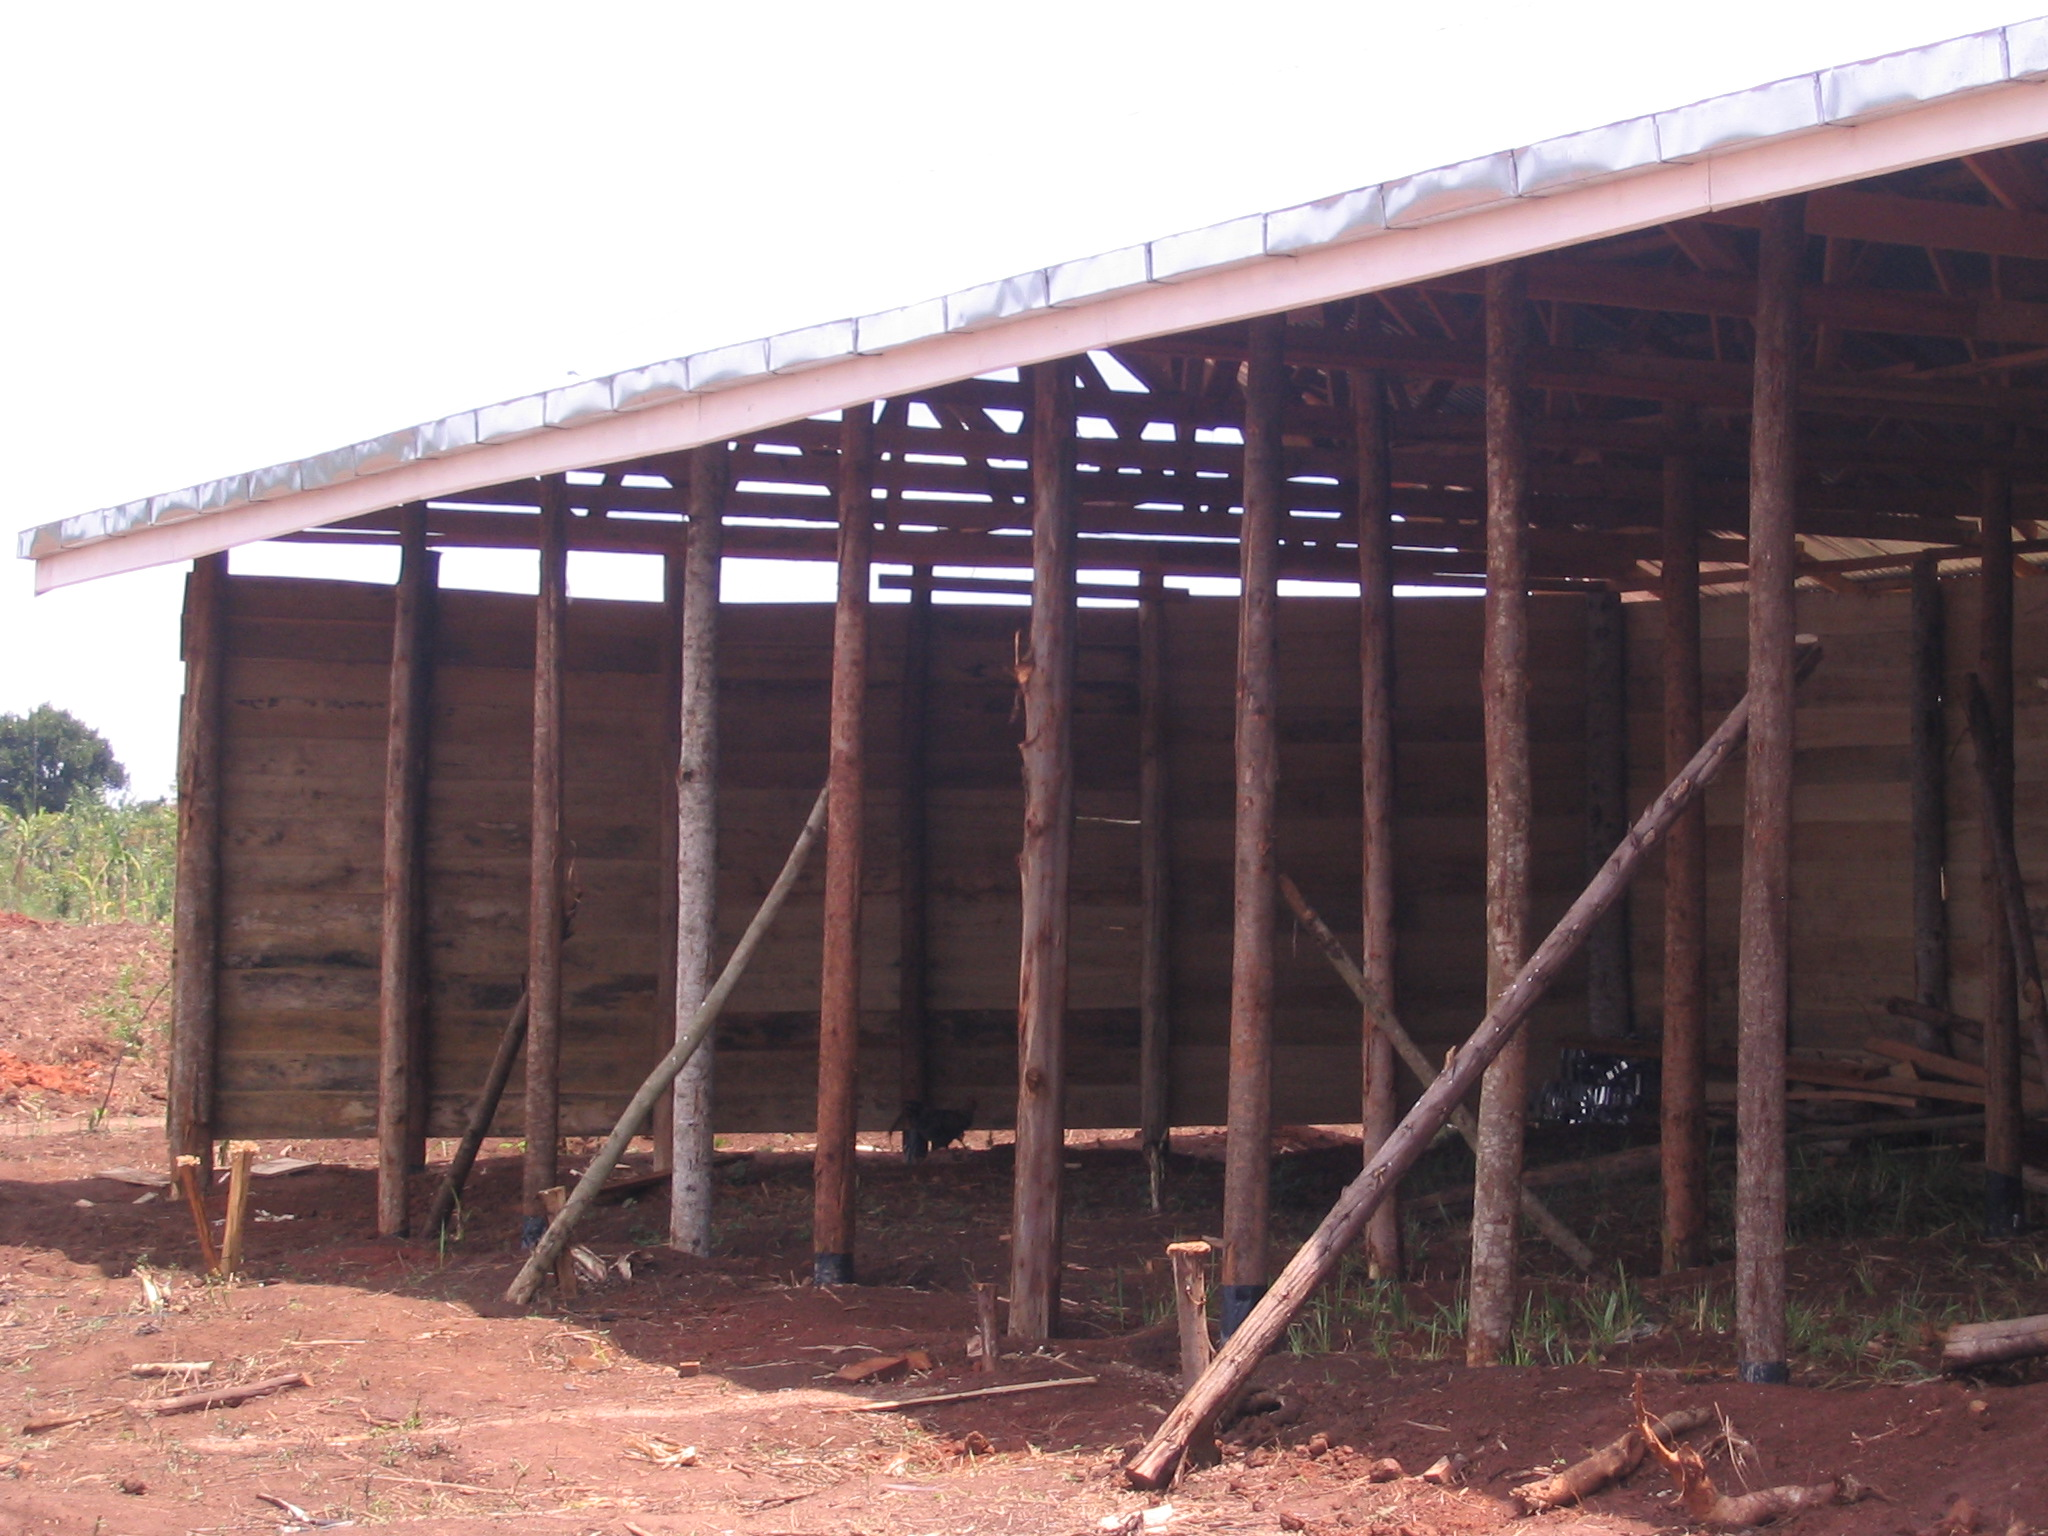 Roofing going on the stables at the gold mine